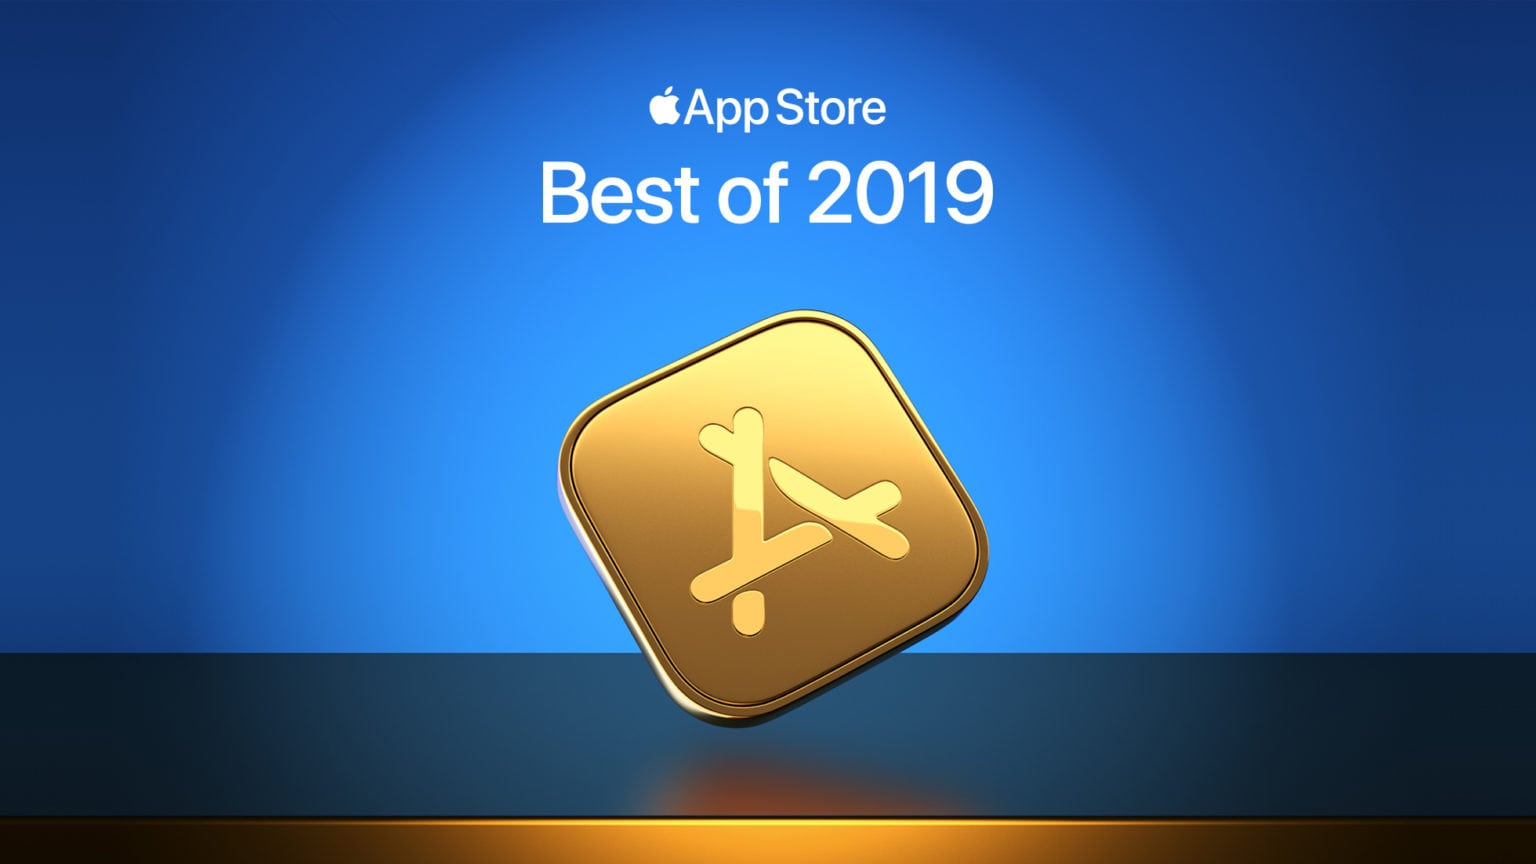 These are Apple's picks for the year's best apps